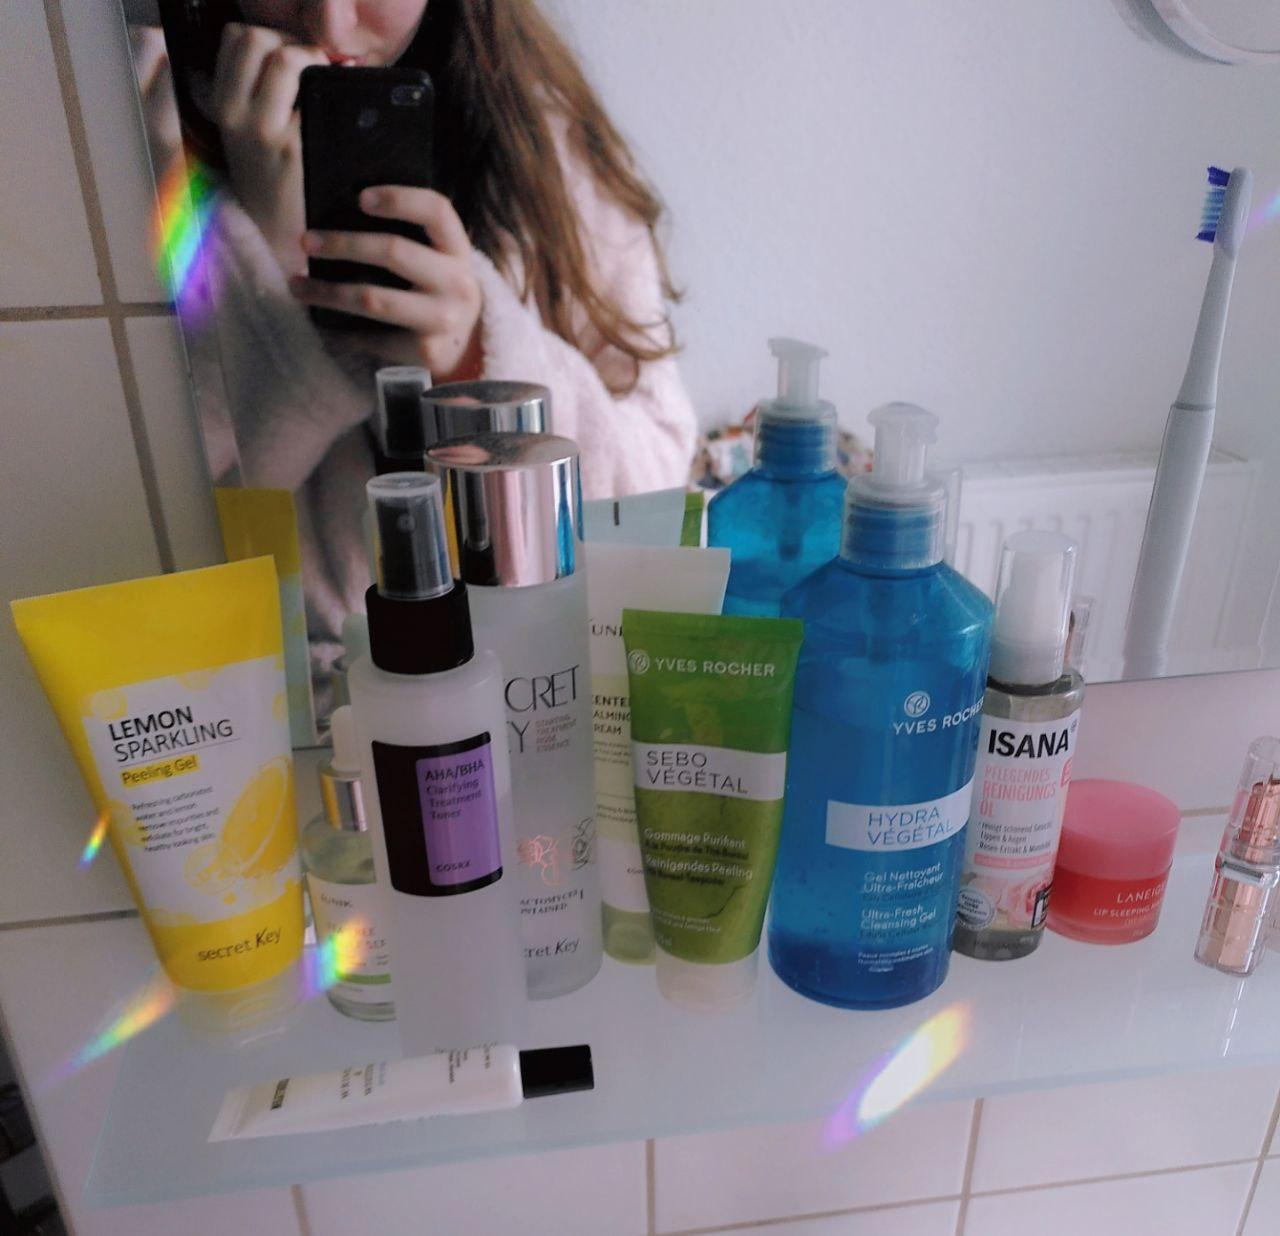 Photo by me, my skincare products on a board under the mirror in the bathroom